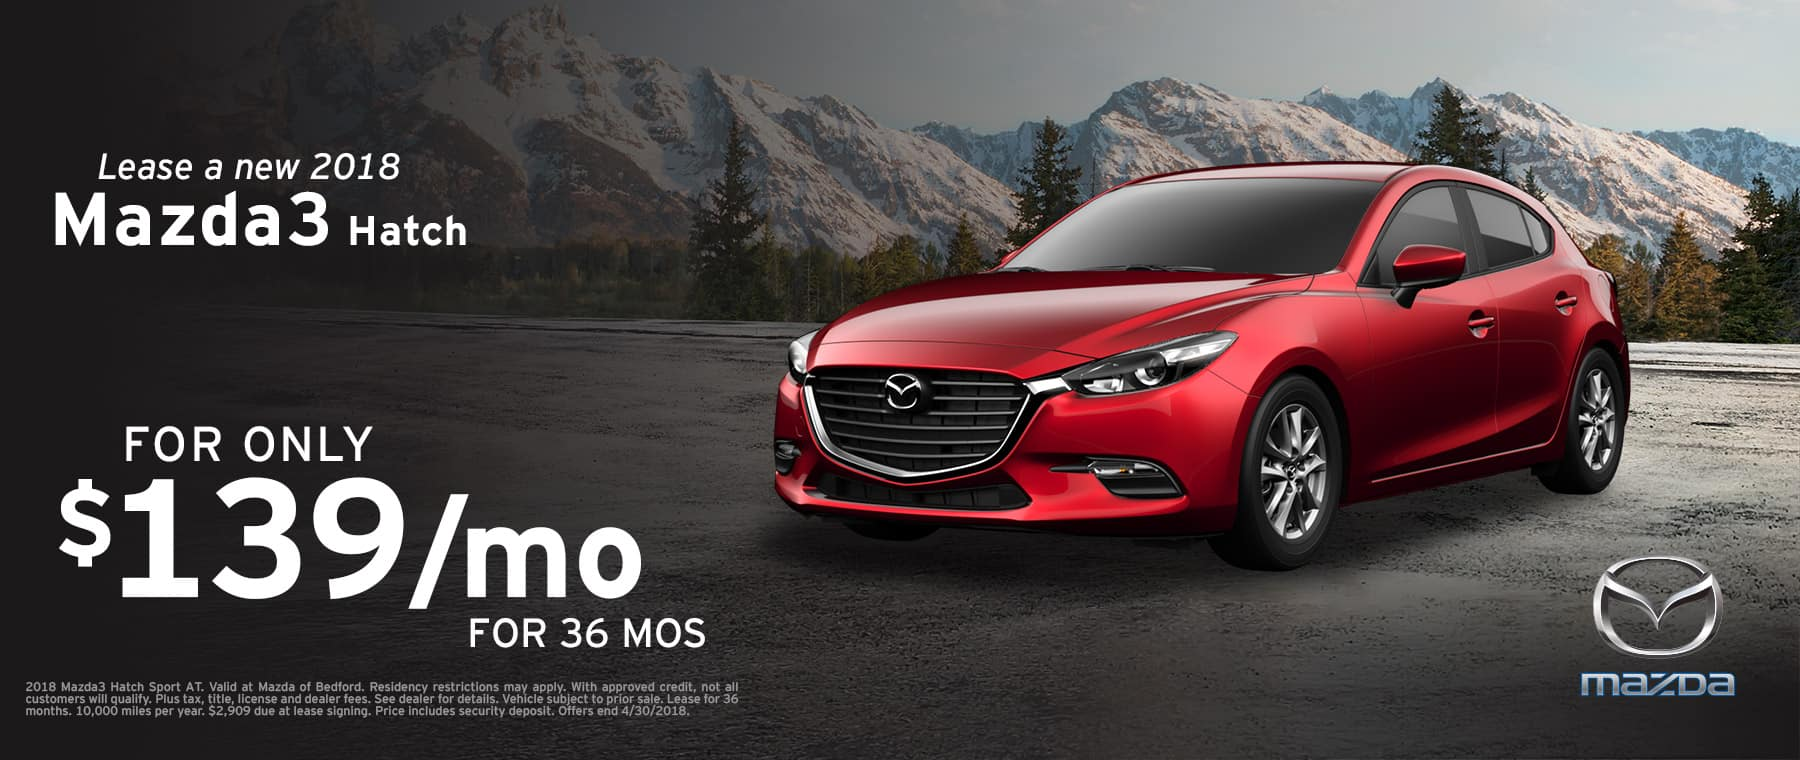 2018 Mazda3 Hatch April